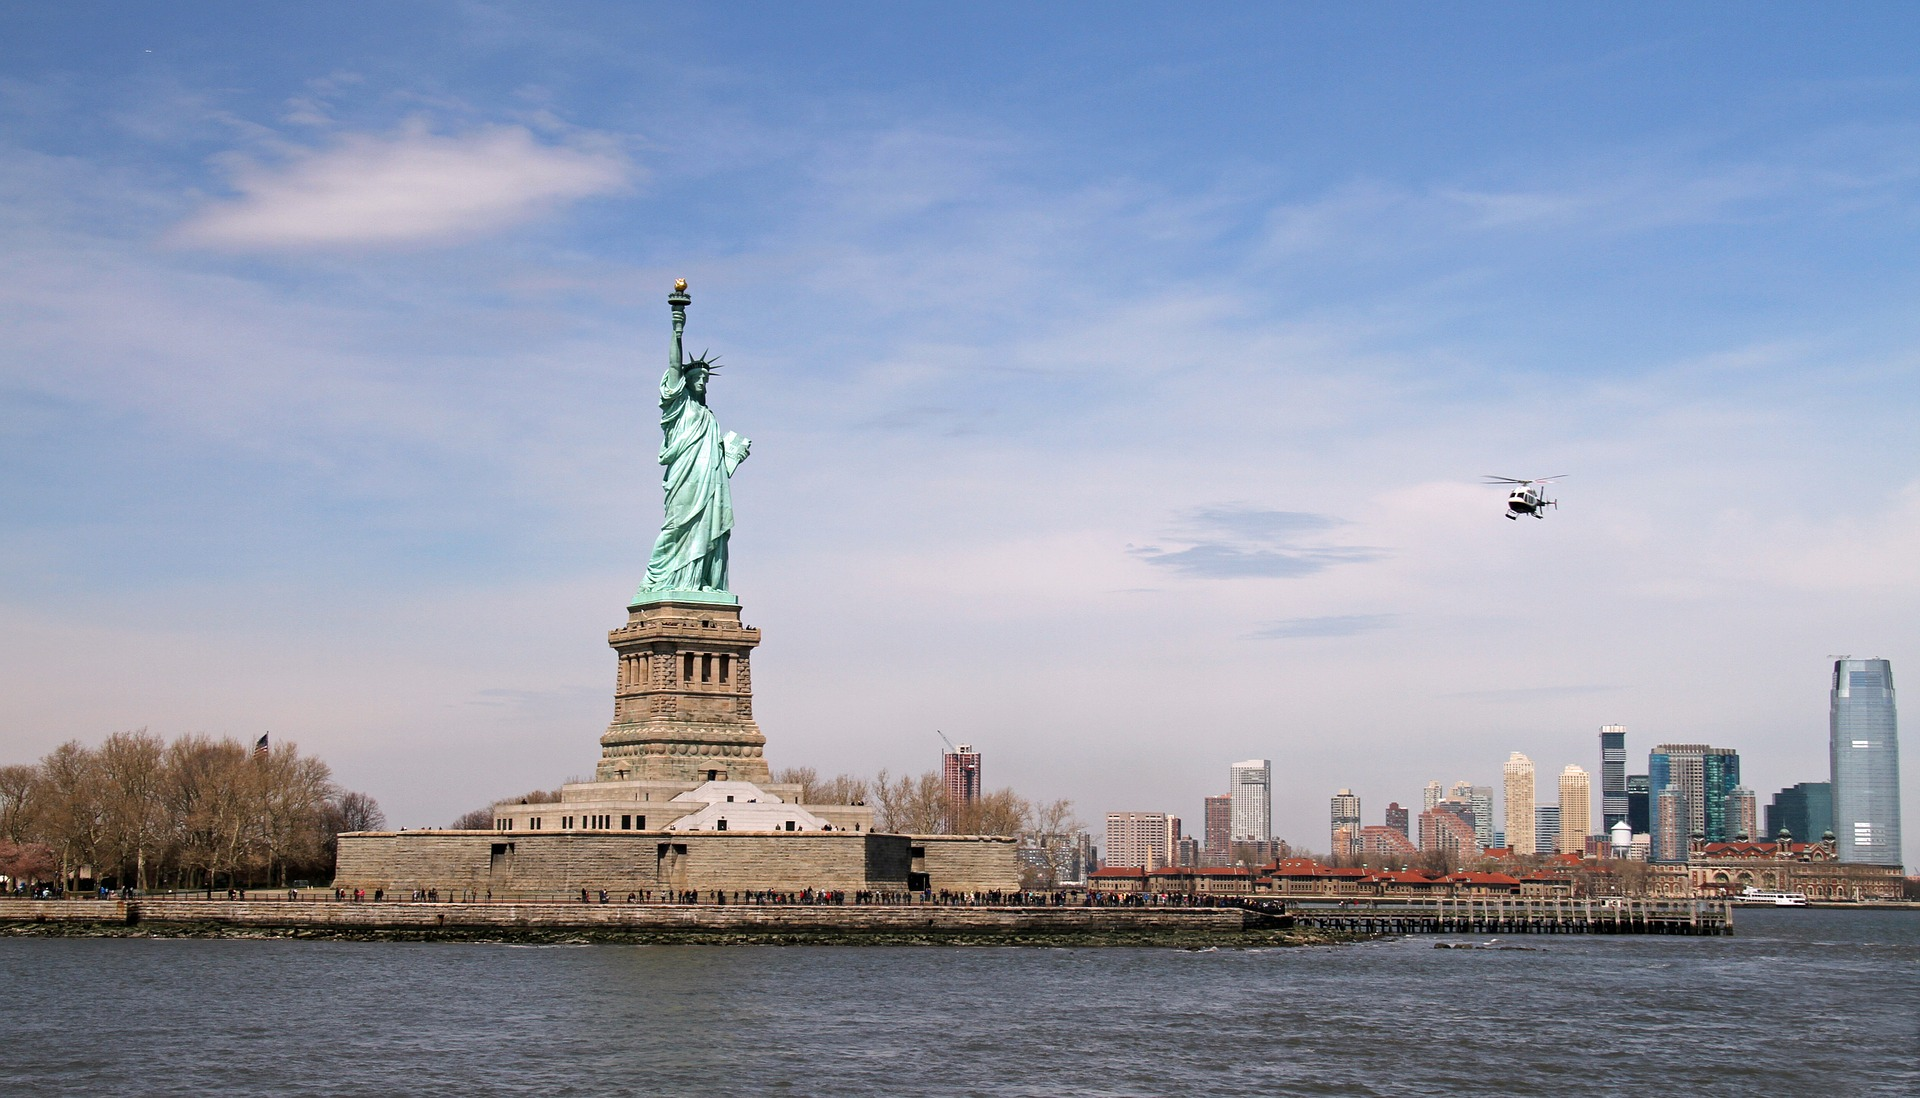 statue-of-liberty-1433761_1920